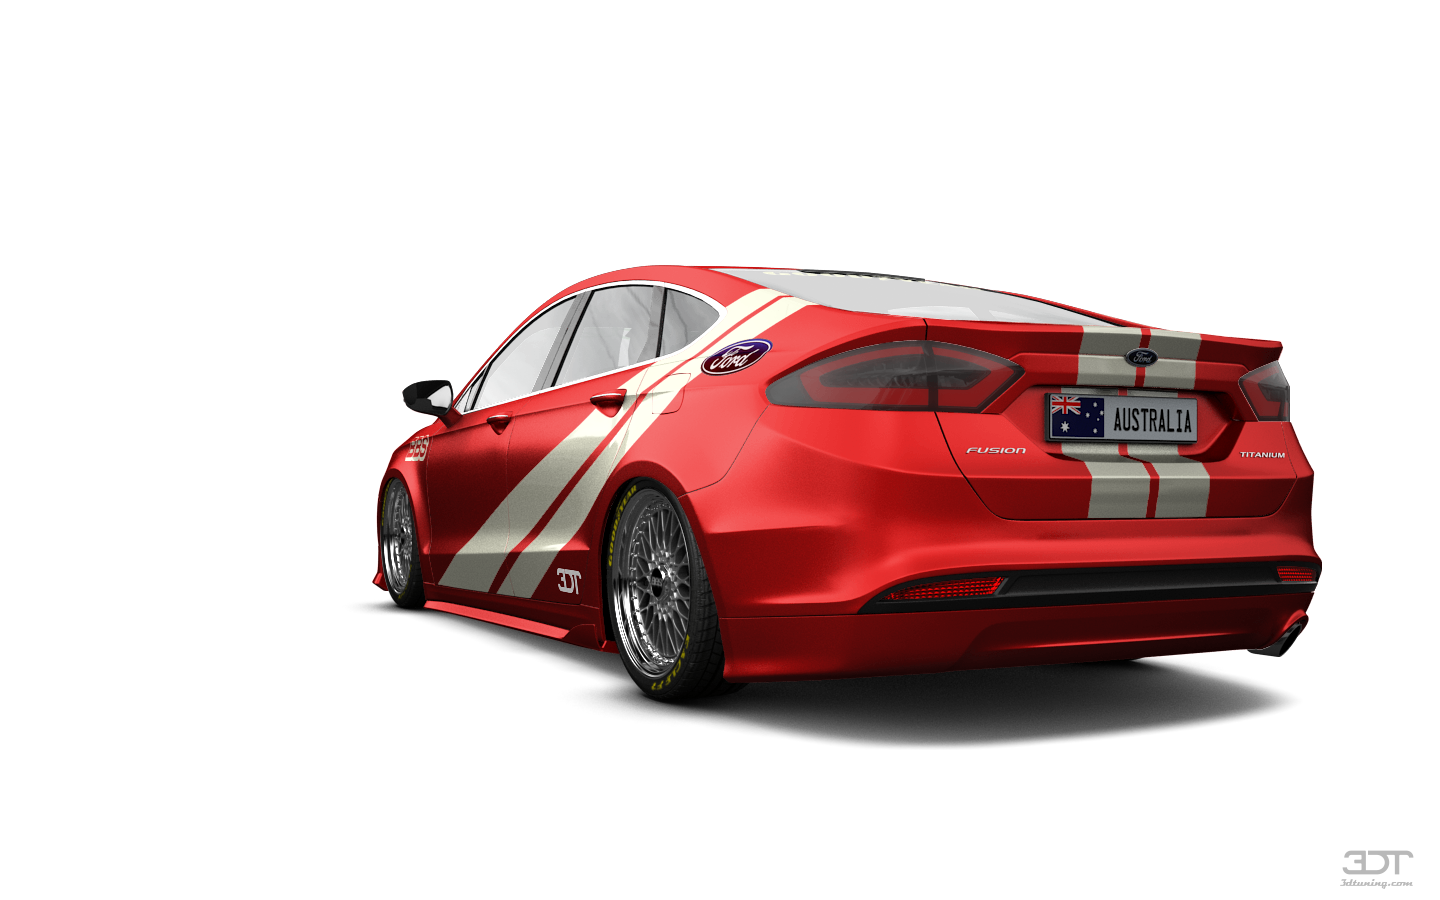 Gallery 3dtuning With Images Ford Mondeo Ford Number Plate